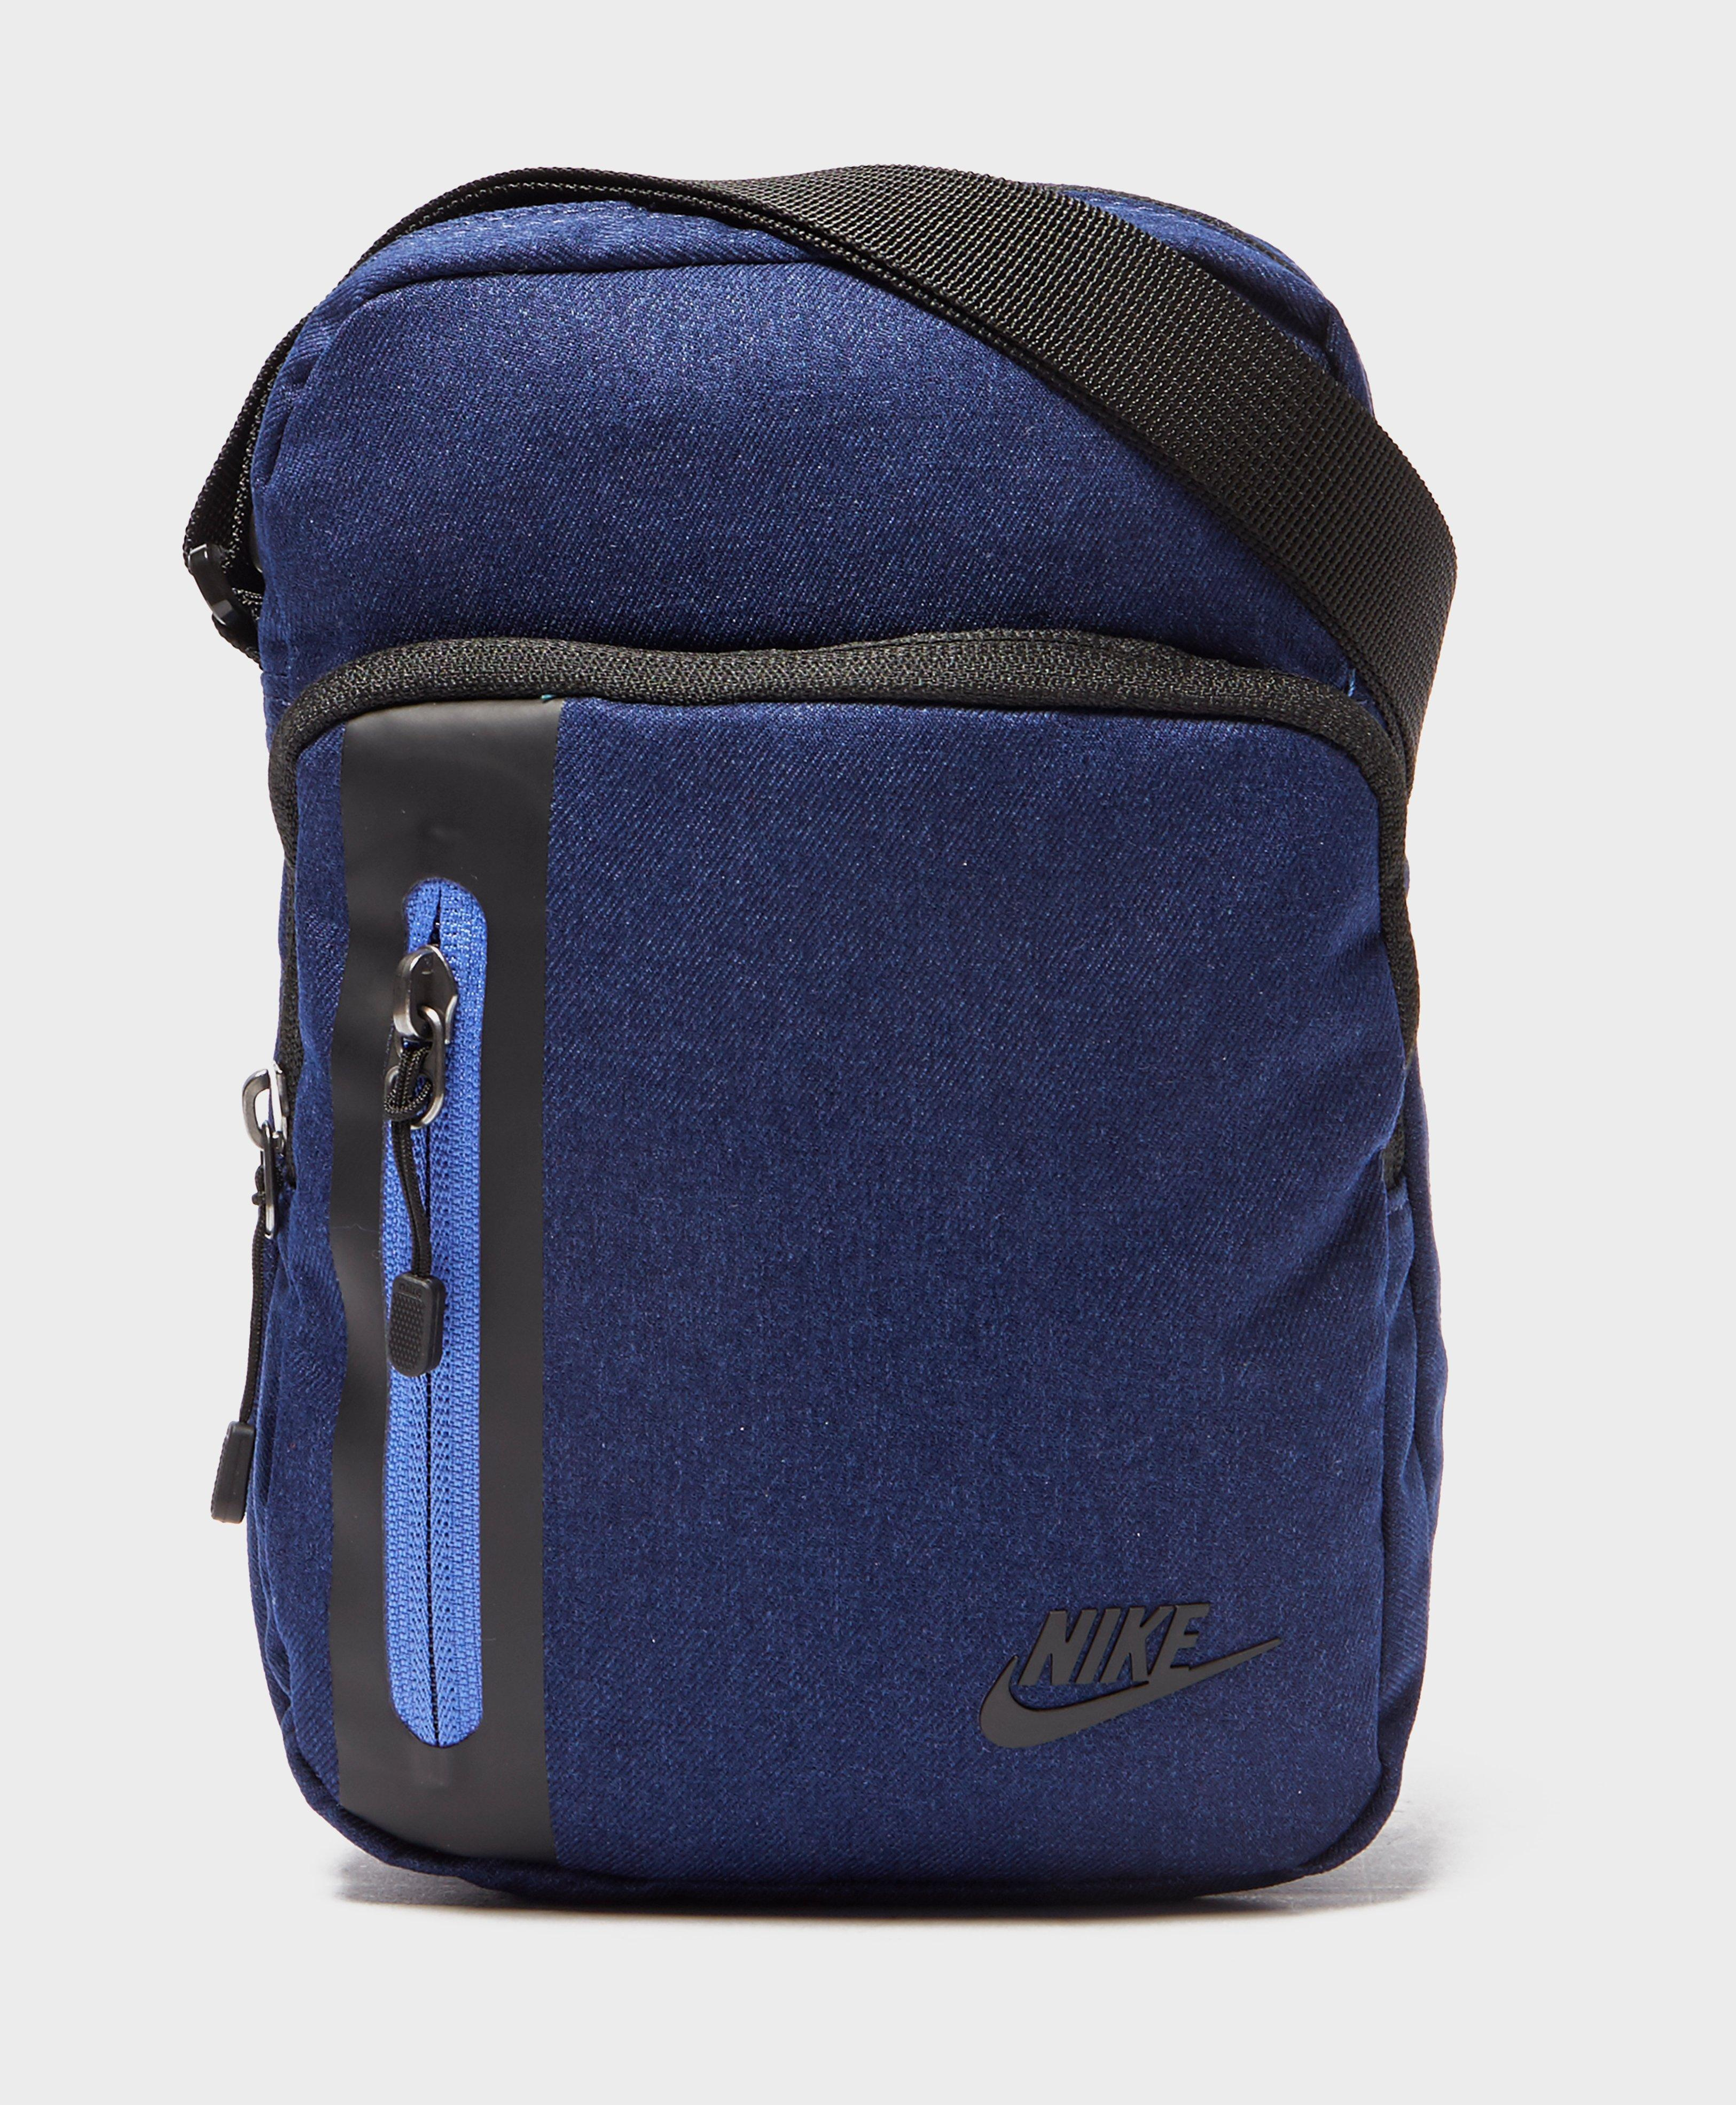 8f72f390b1 Lyst - Nike Core Small Items 3.0 Bag in Blue for Men